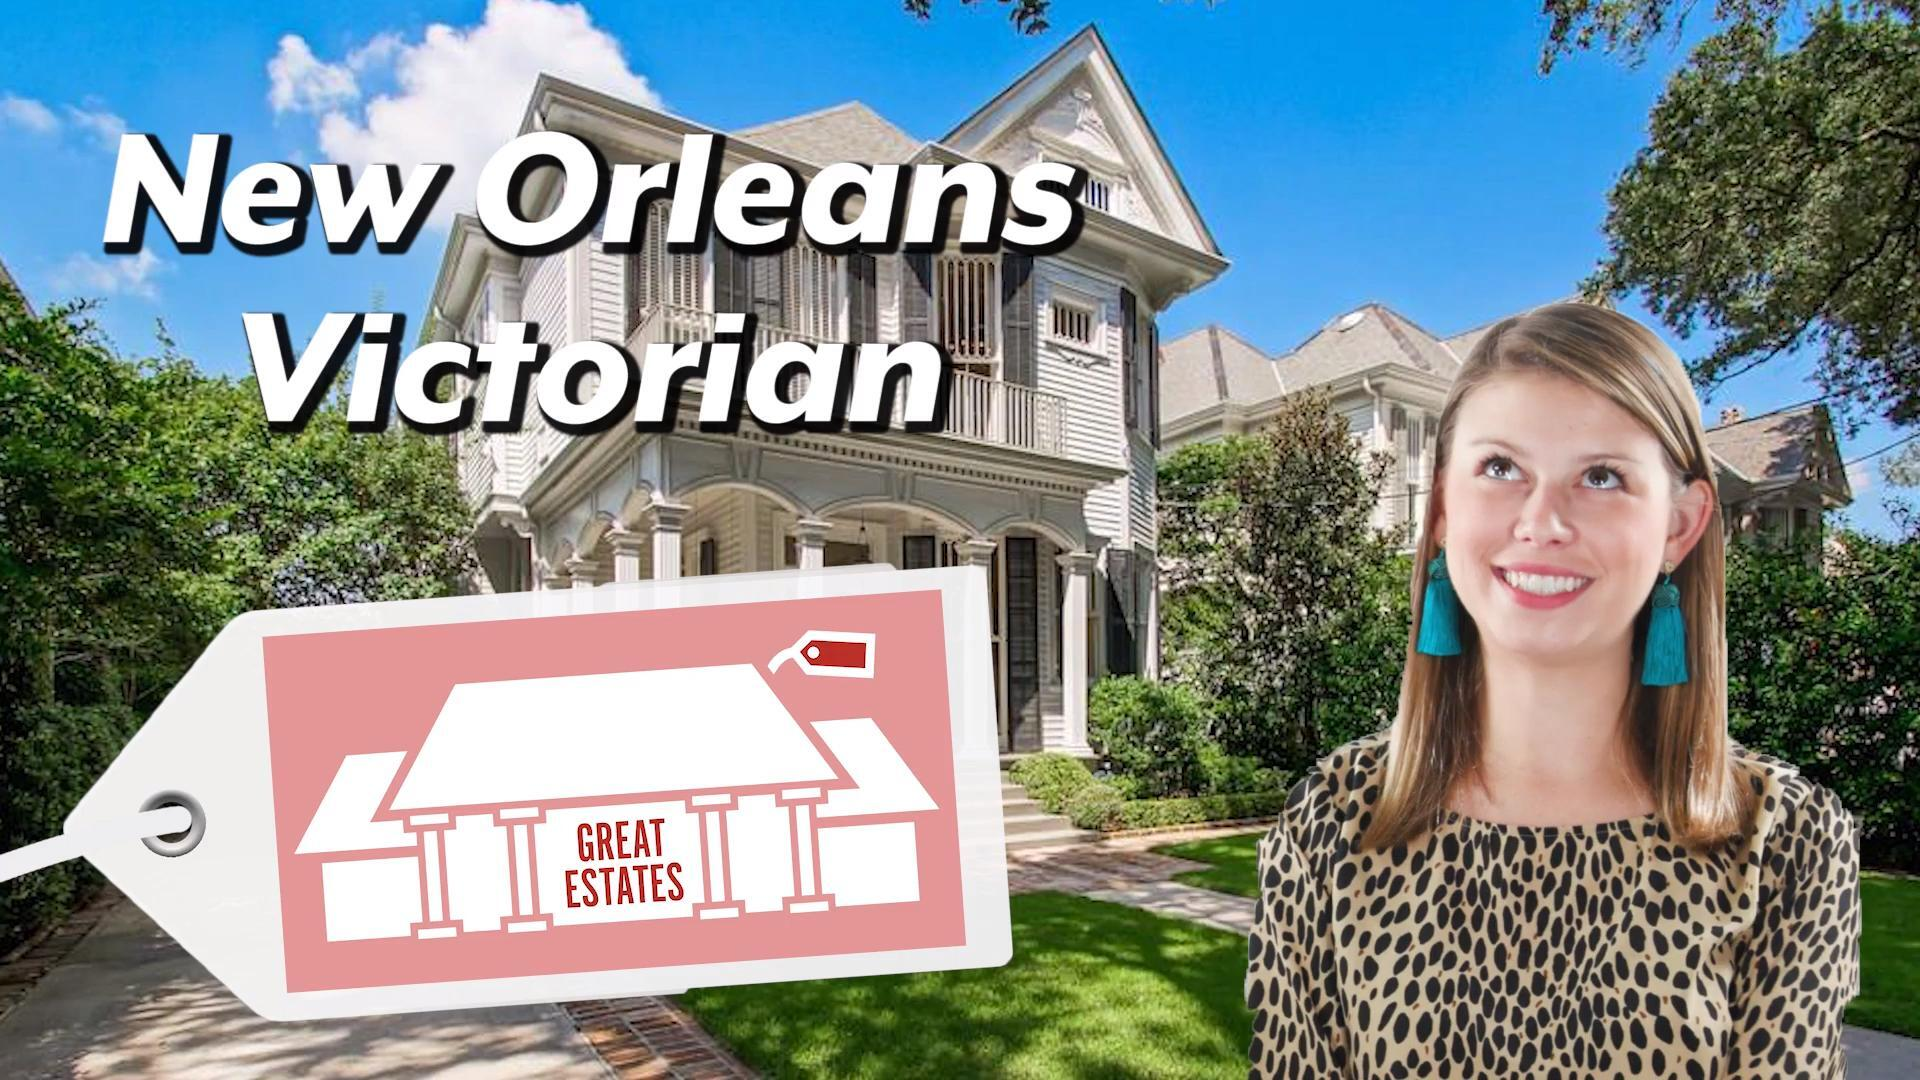 This Gorgeous Victorian Home in Uptown New Orleans Is on the Market for $1.95 Million